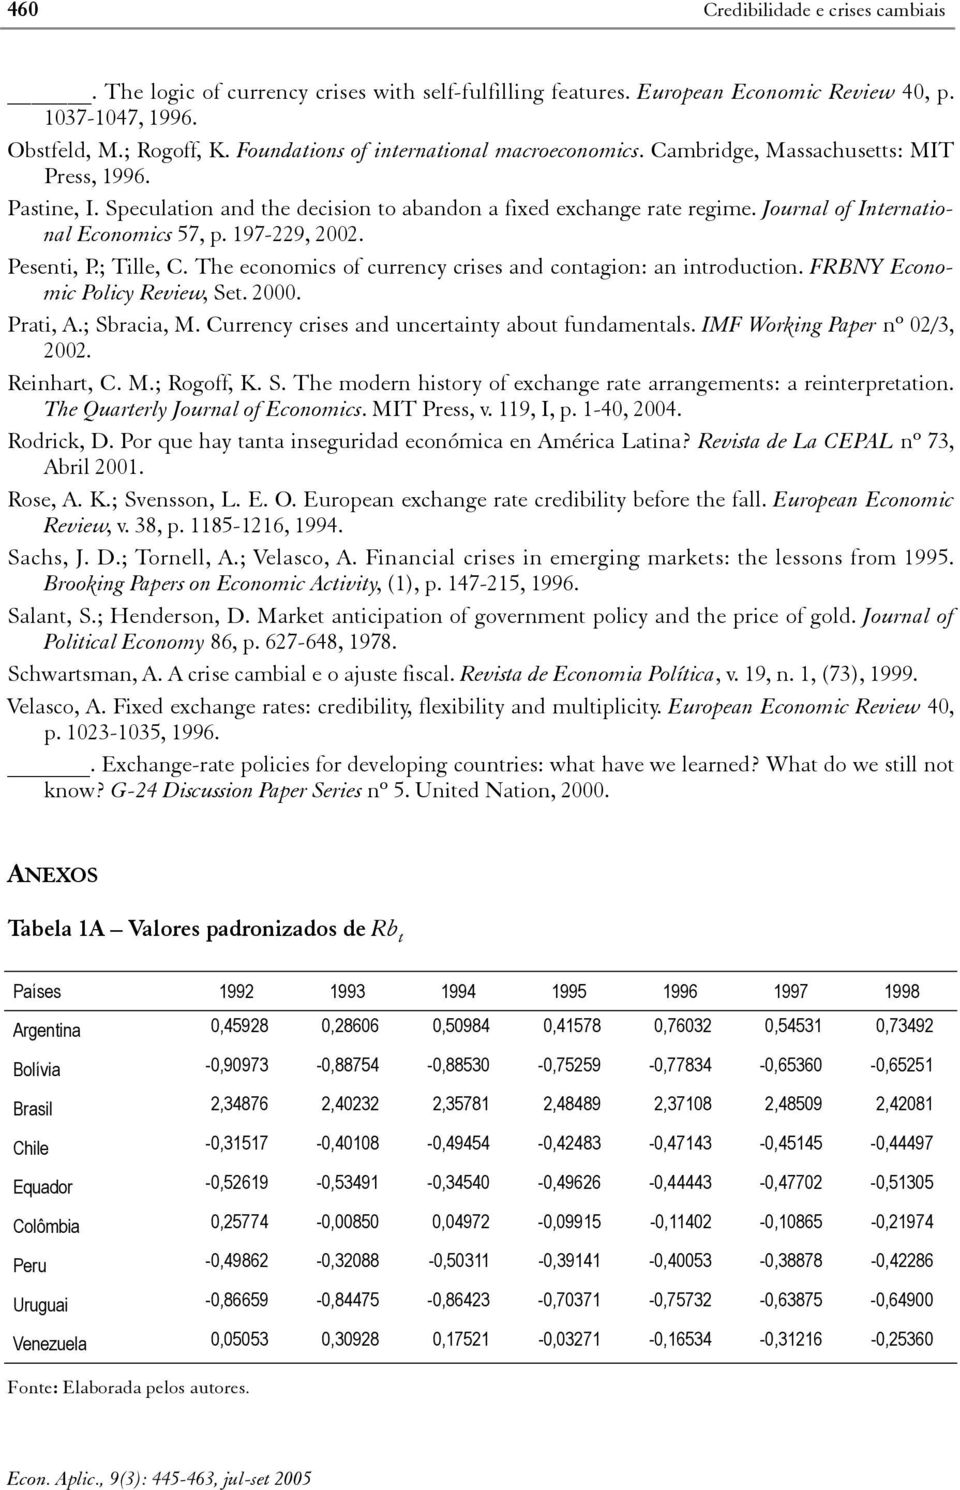 Th conomics of currncy criss and conagion: an inroducion. FRBNY Economic Policy Rviw, S. 2000. Prai, A.; Sbracia, M. Currncy criss and uncrainy abou fundamnals. IMF Working Papr nº 02/3, 2002.